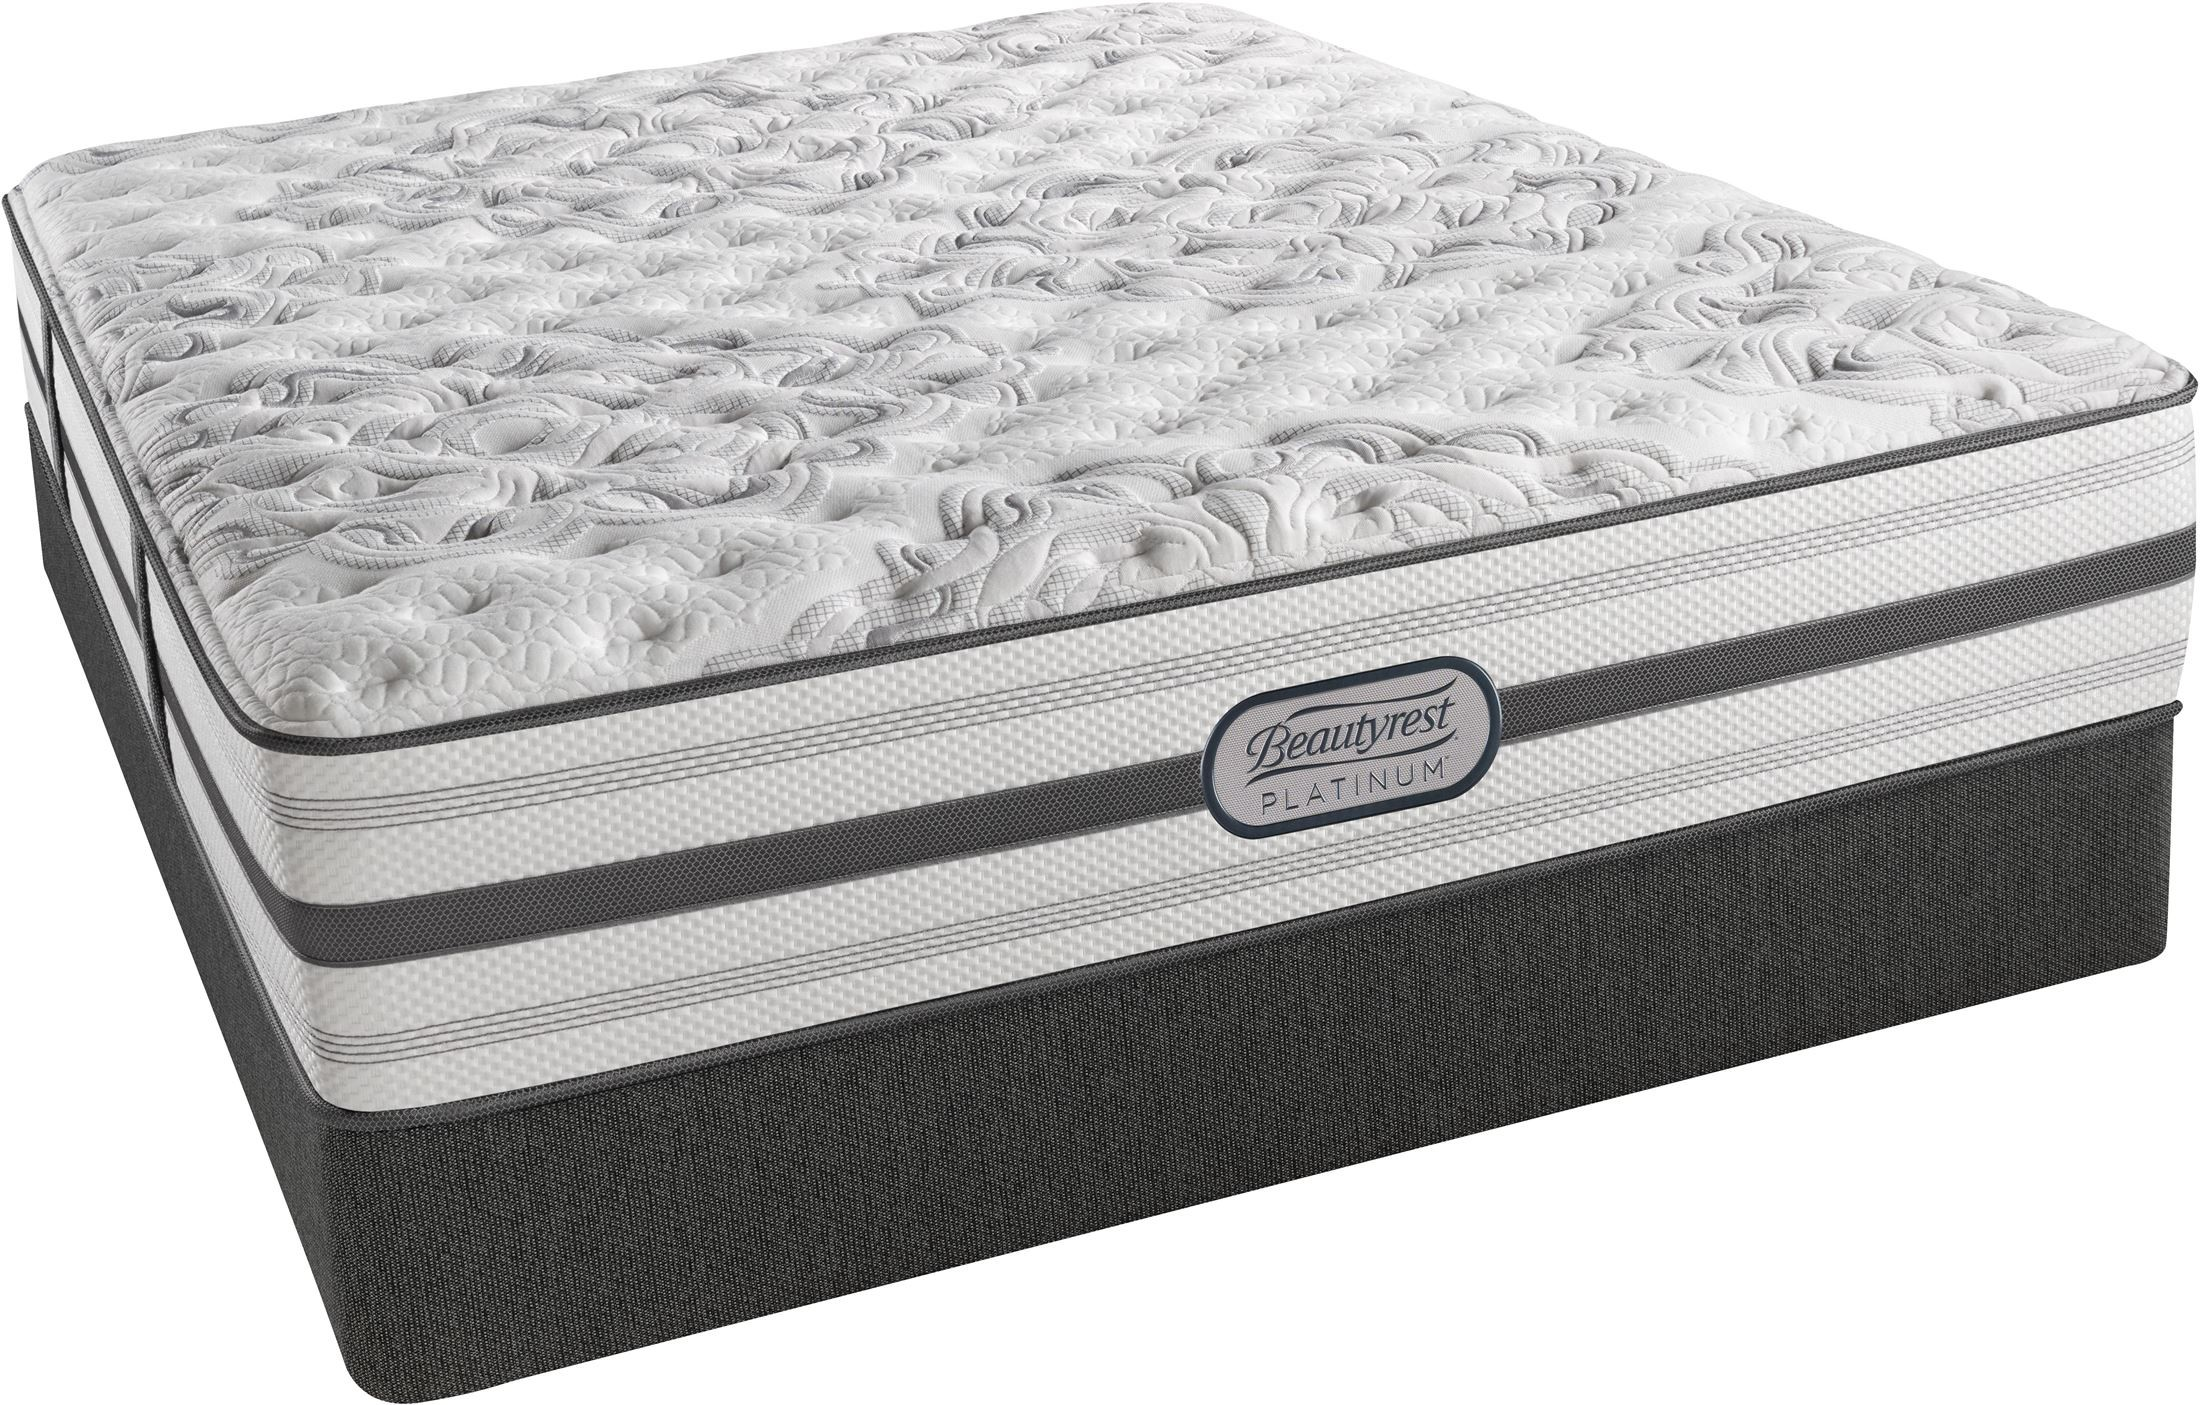 Beautyrest Recharge Platinum Abracadabra Tight Top Extra Firm Cal King Size Mattress From